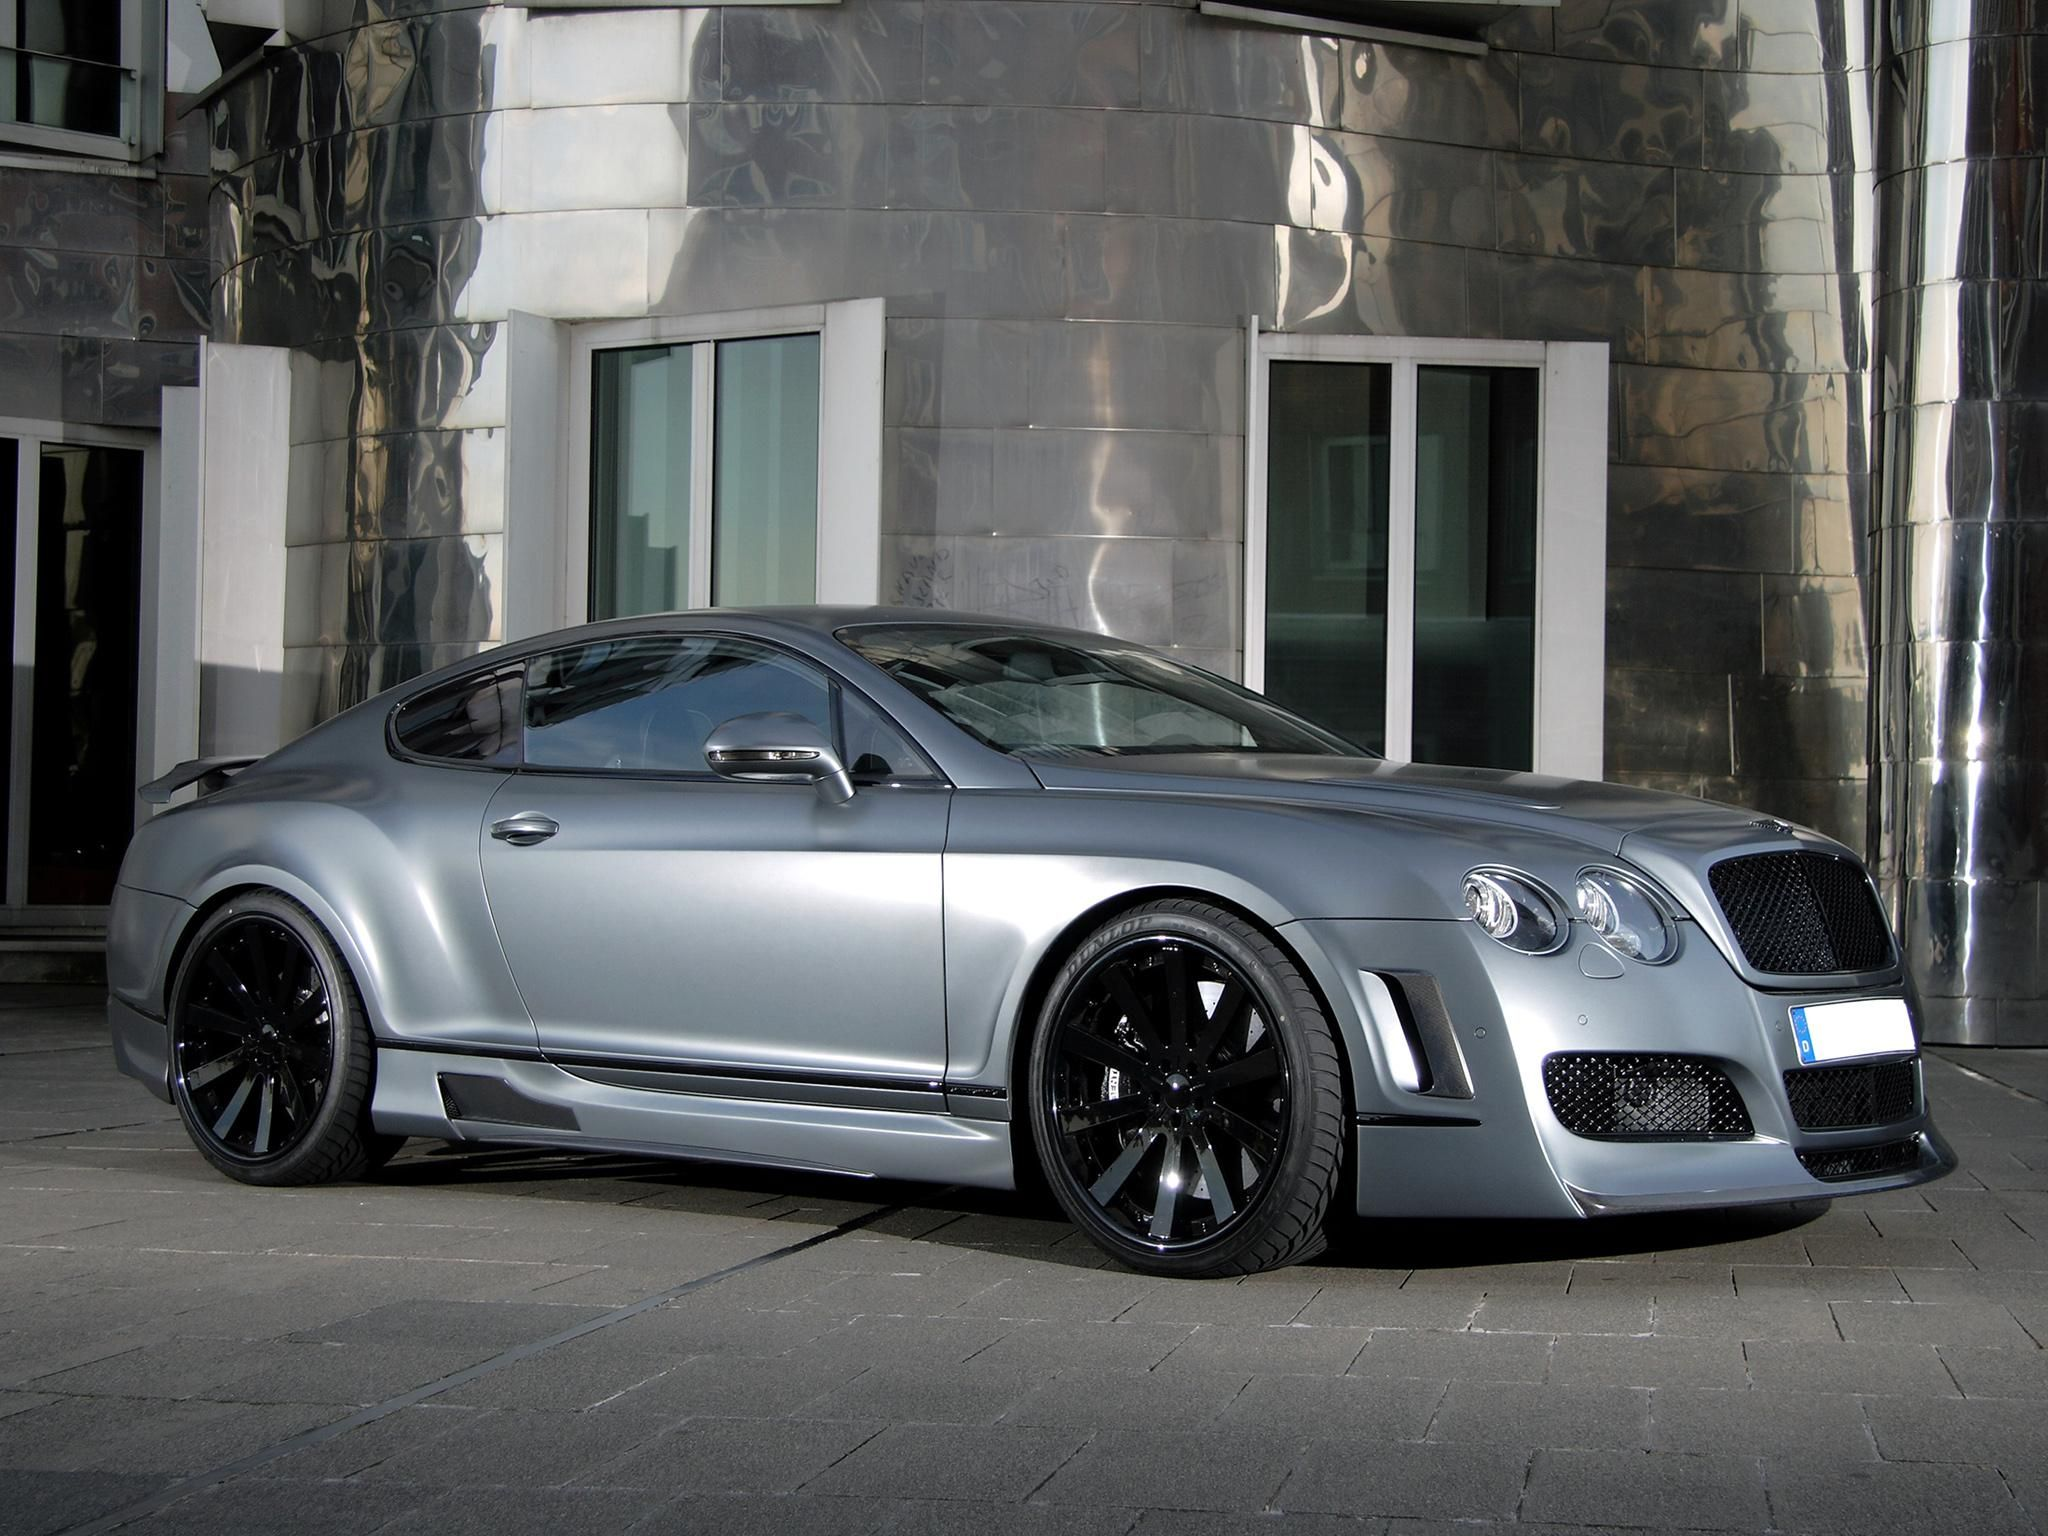 Erson Germany Bentley Gt id CARS Машины